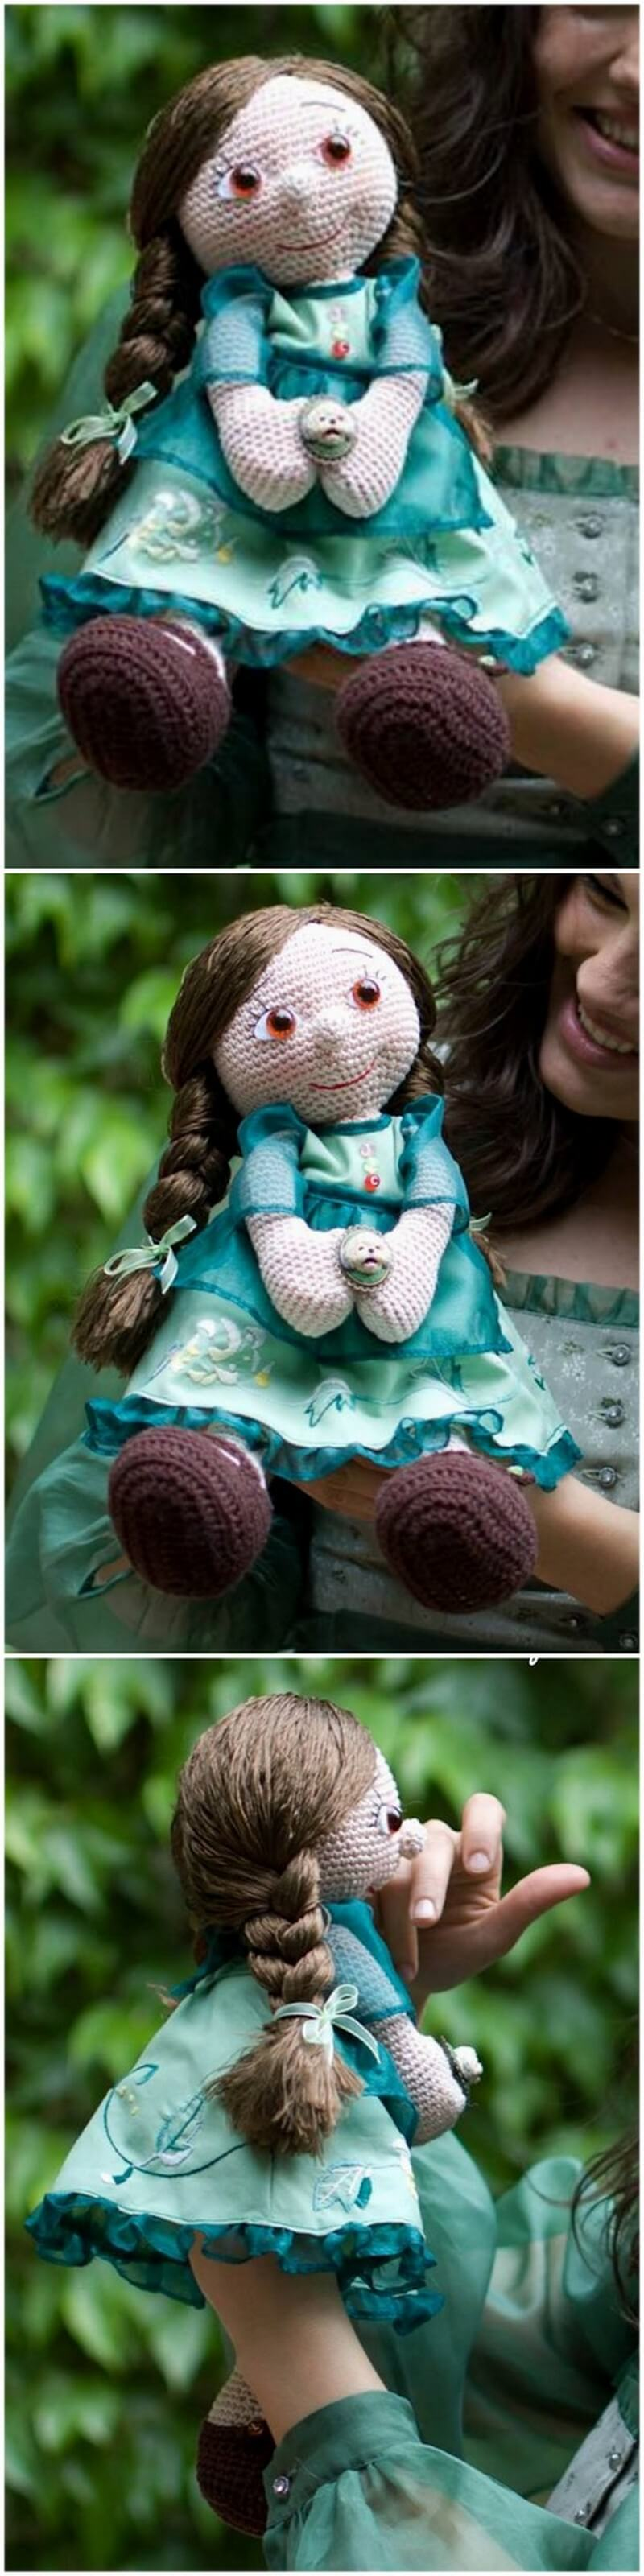 Crochet Amigurumi Doll Pattern (7)